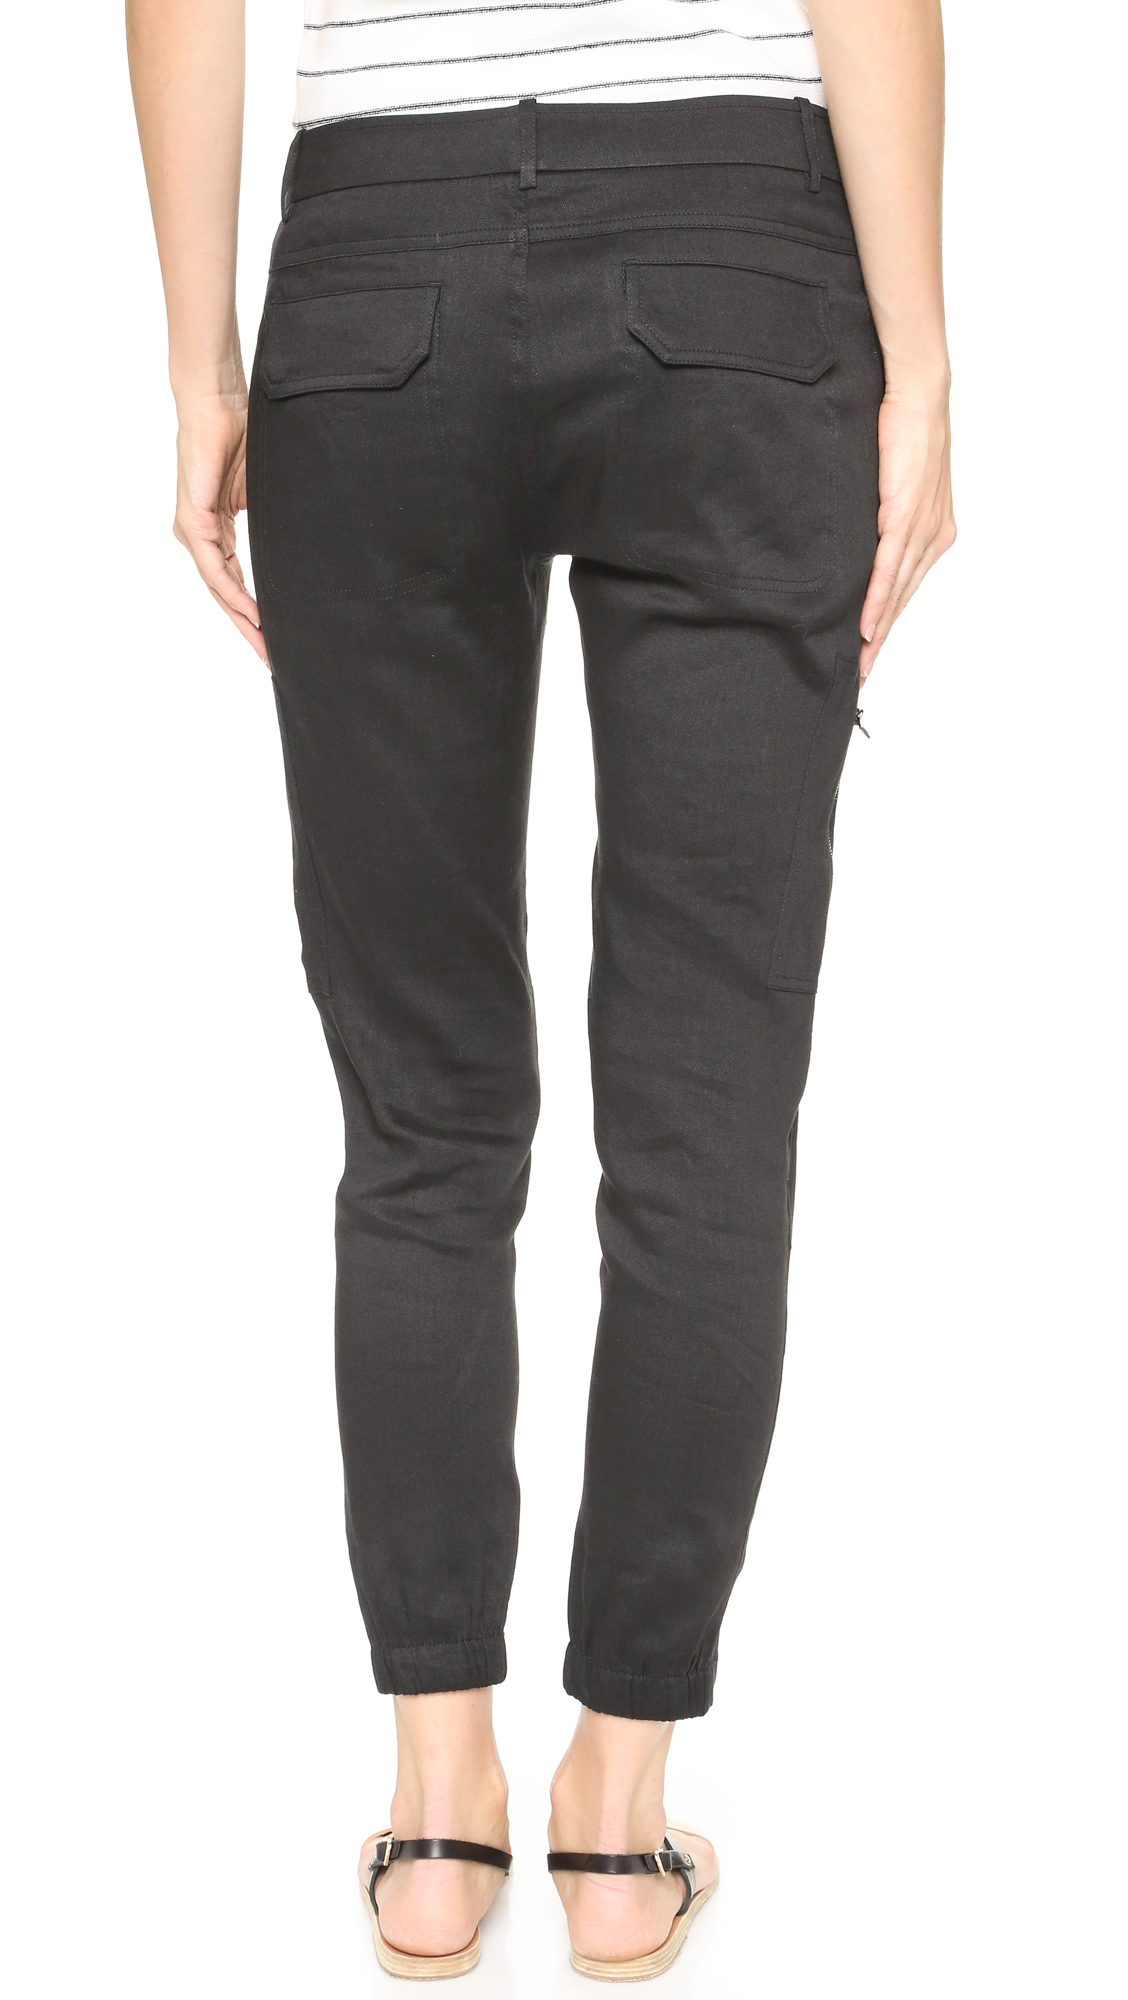 Find linen cargo pants womens at ShopStyle. Shop the latest collection of linen cargo pants womens from the most popular stores - all in one place.